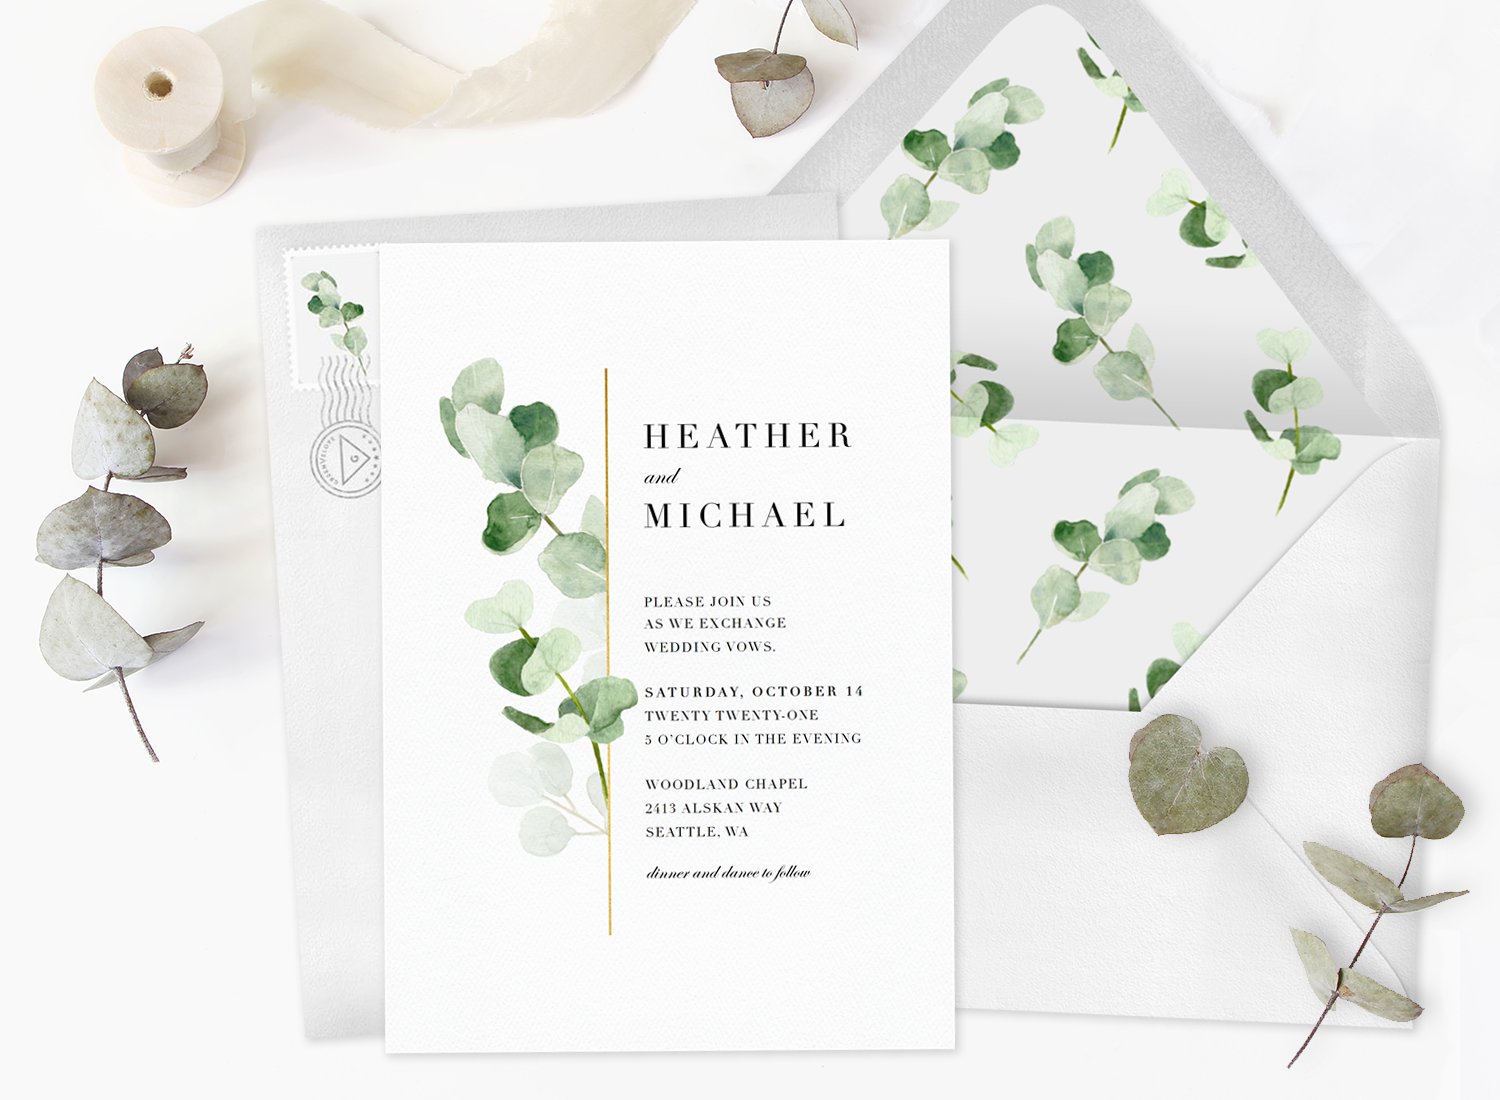 An all-in-one wedding invitation with a matching envelope, ribbon, and greenery